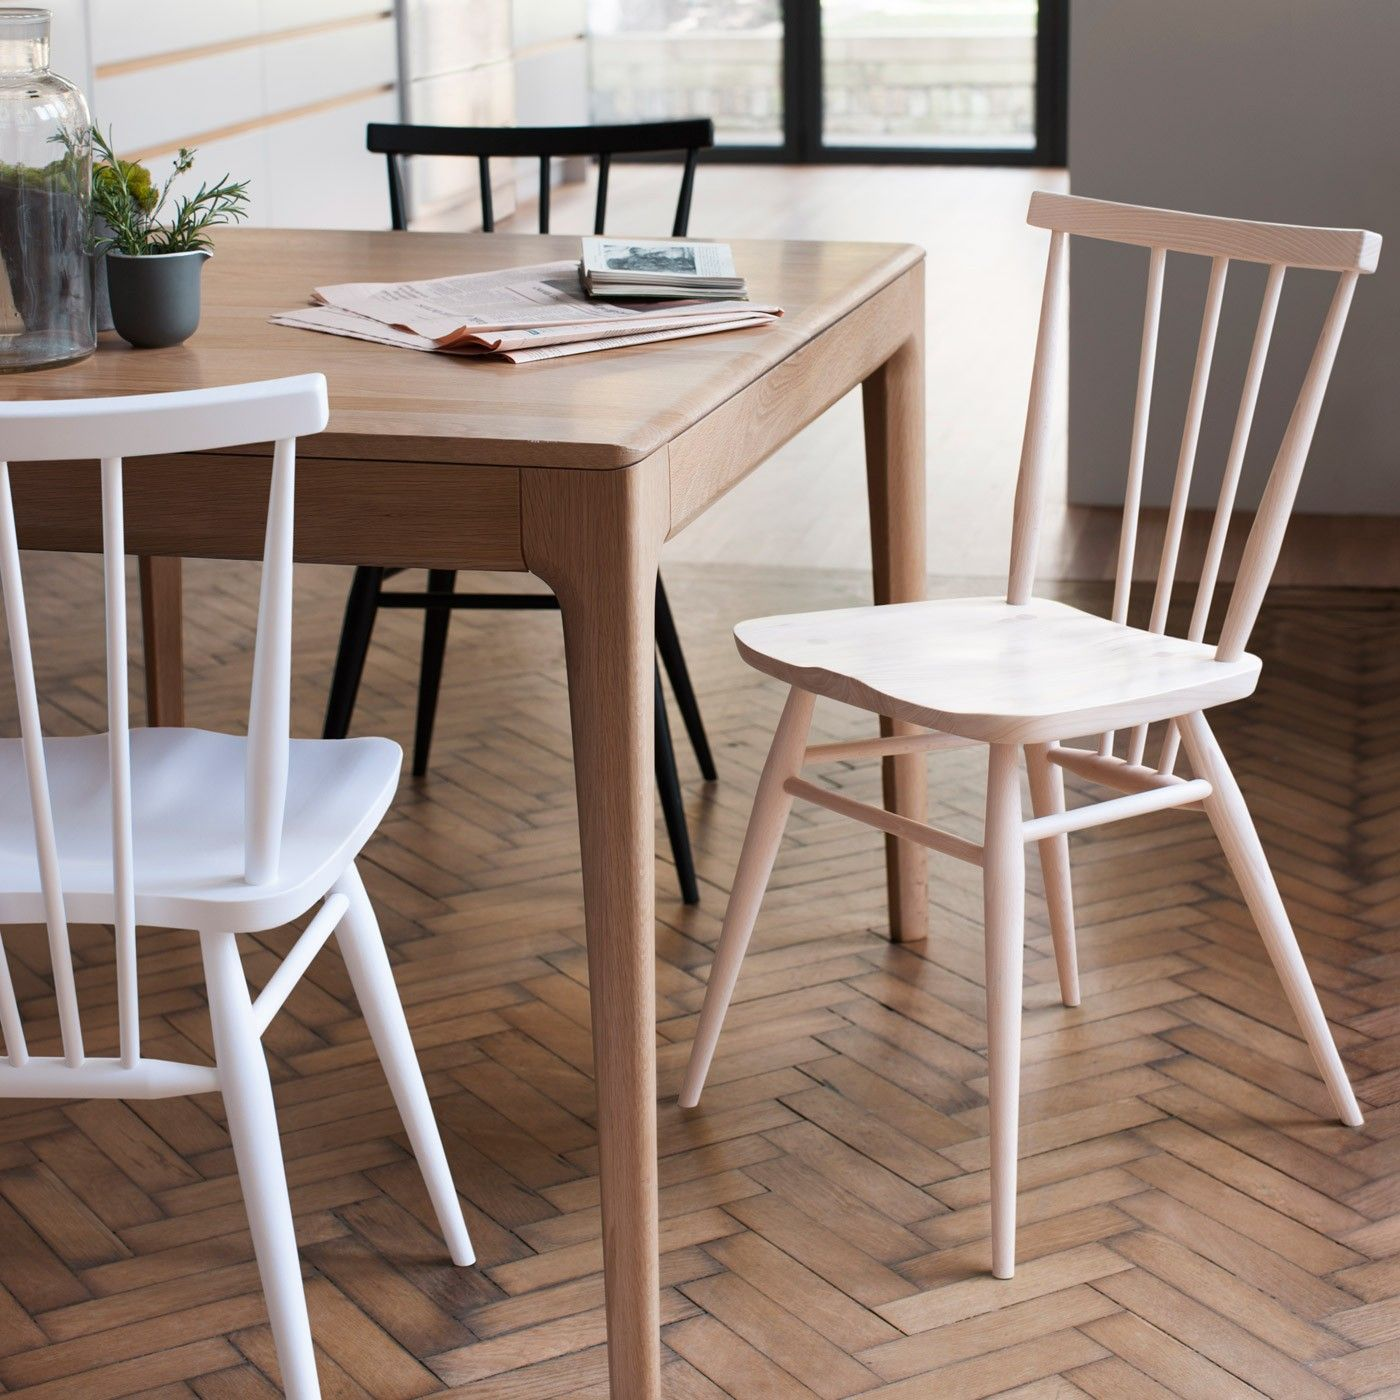 First designed by Ercol founder Lucian Ercolani in the 1950s this